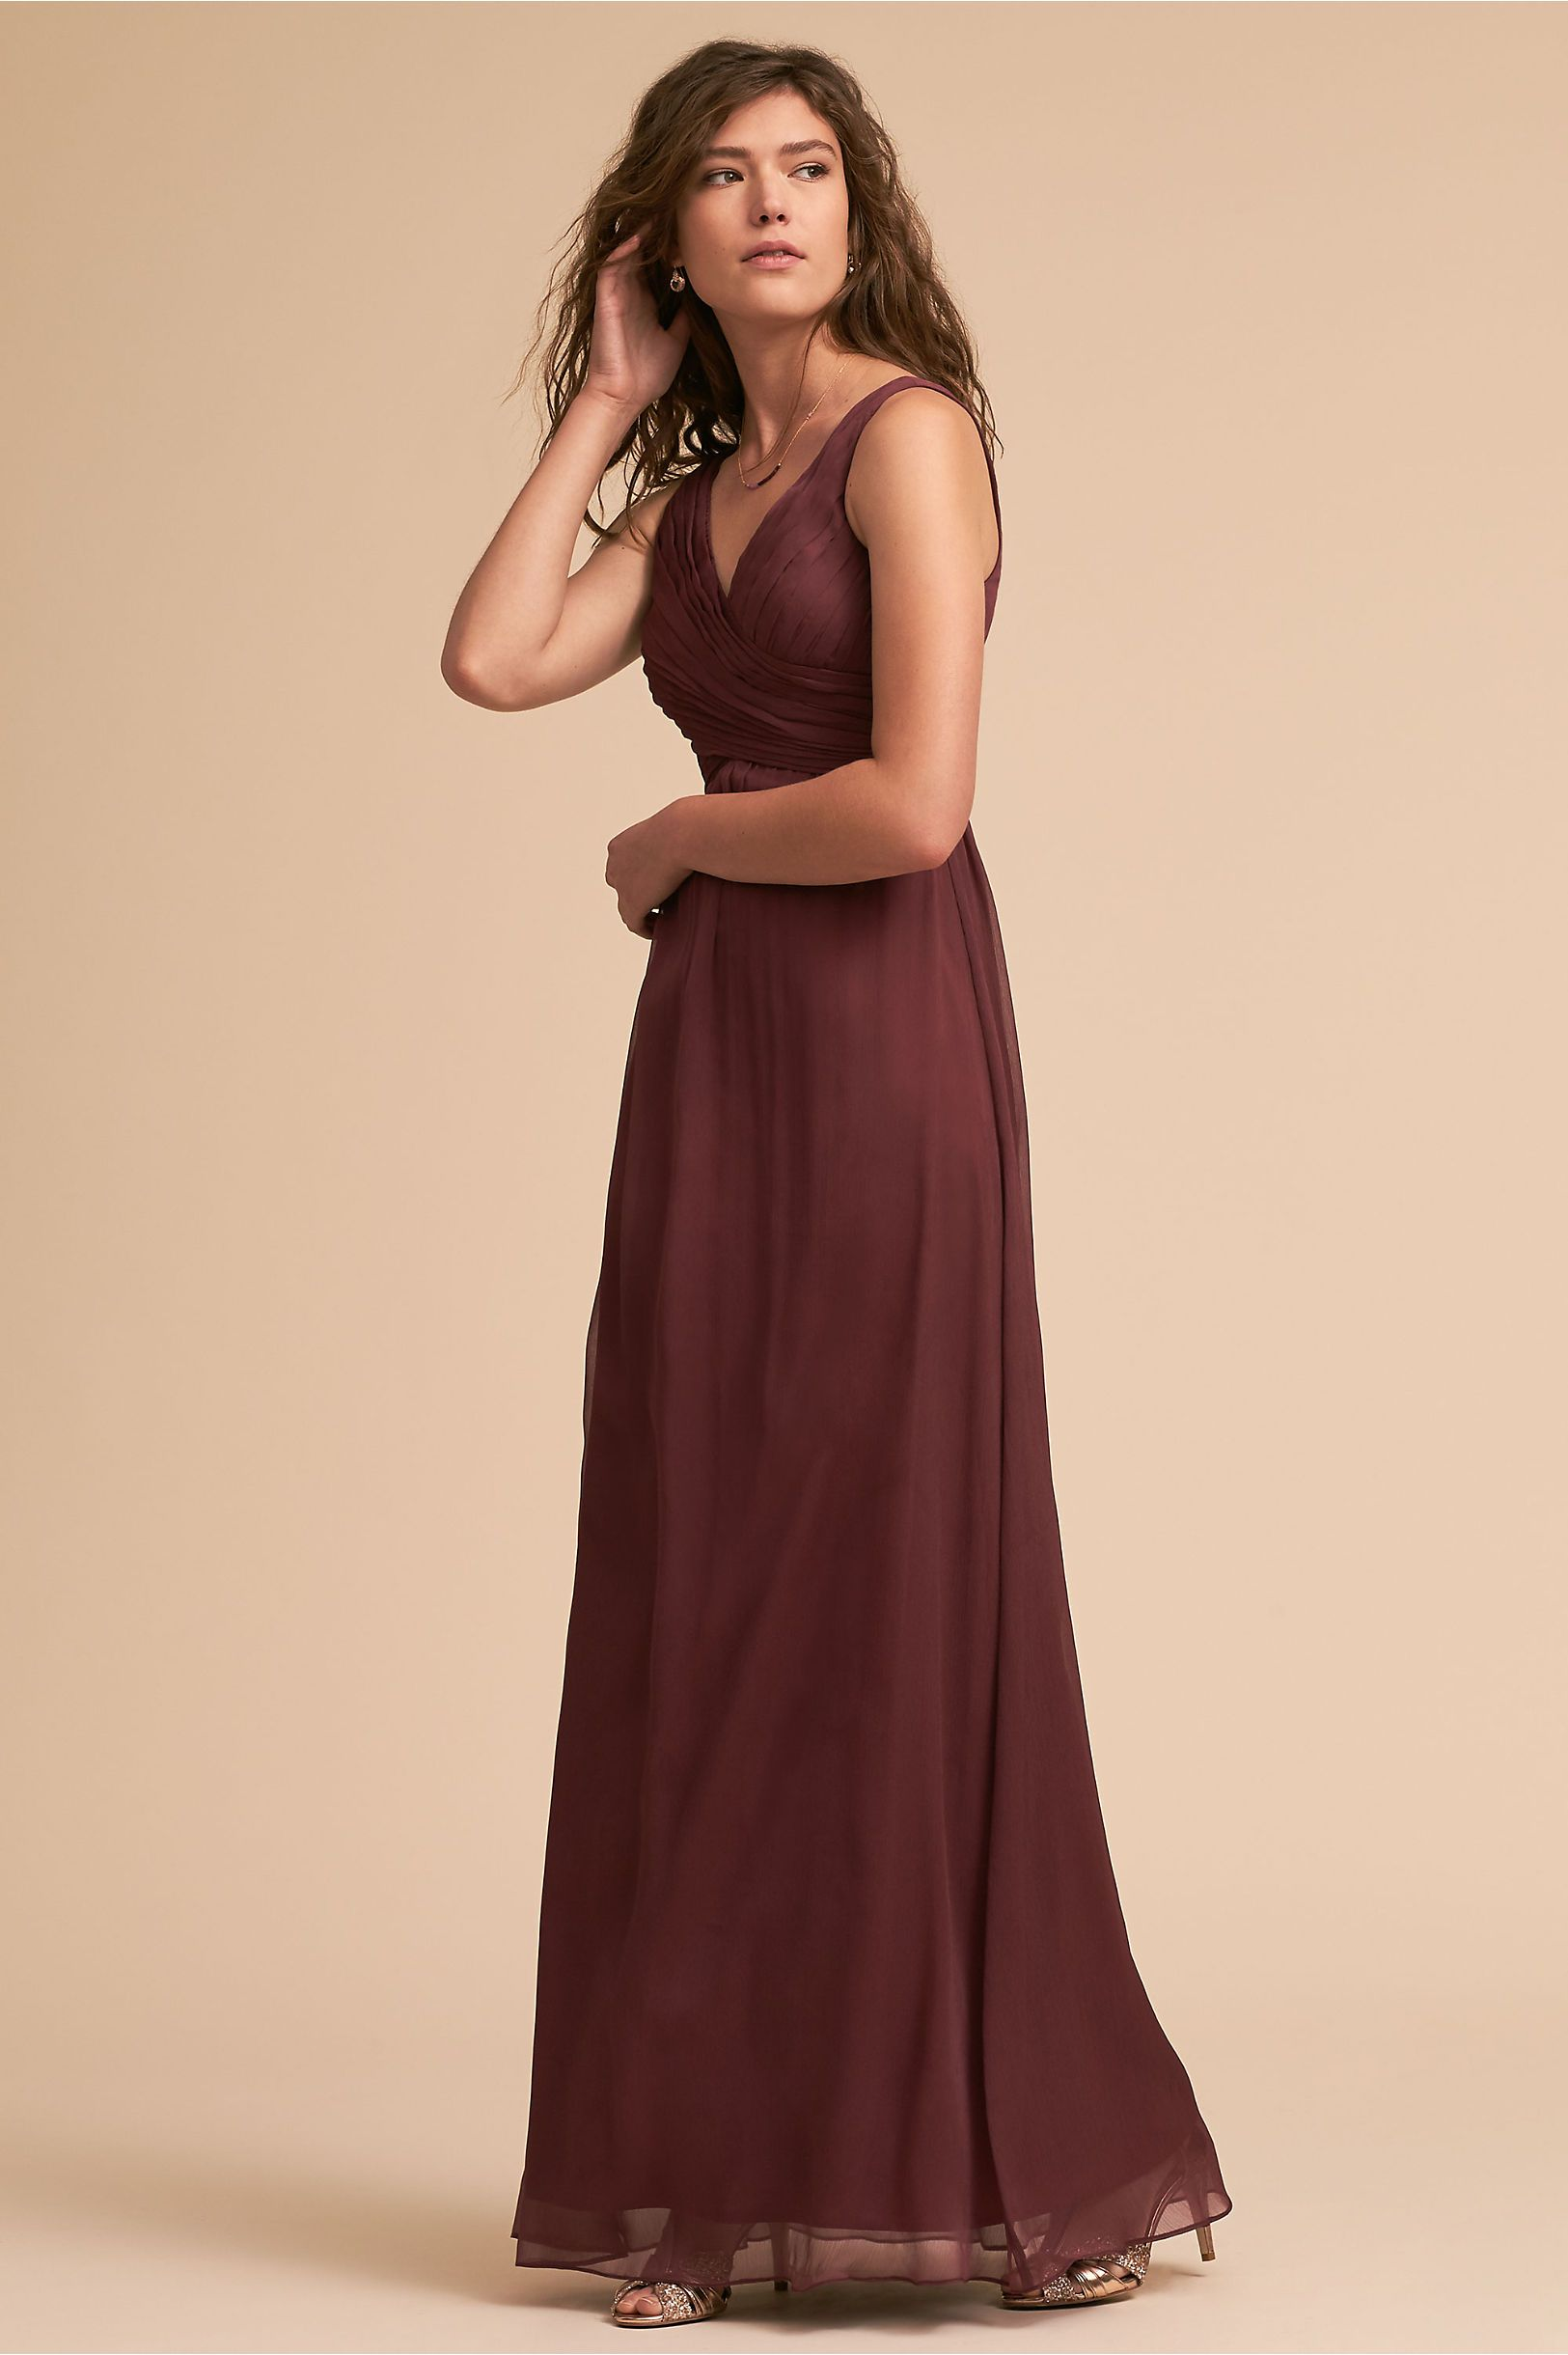 ab59936db61a Burgundy Purple Bridesmaid Dresses - raveitsafe